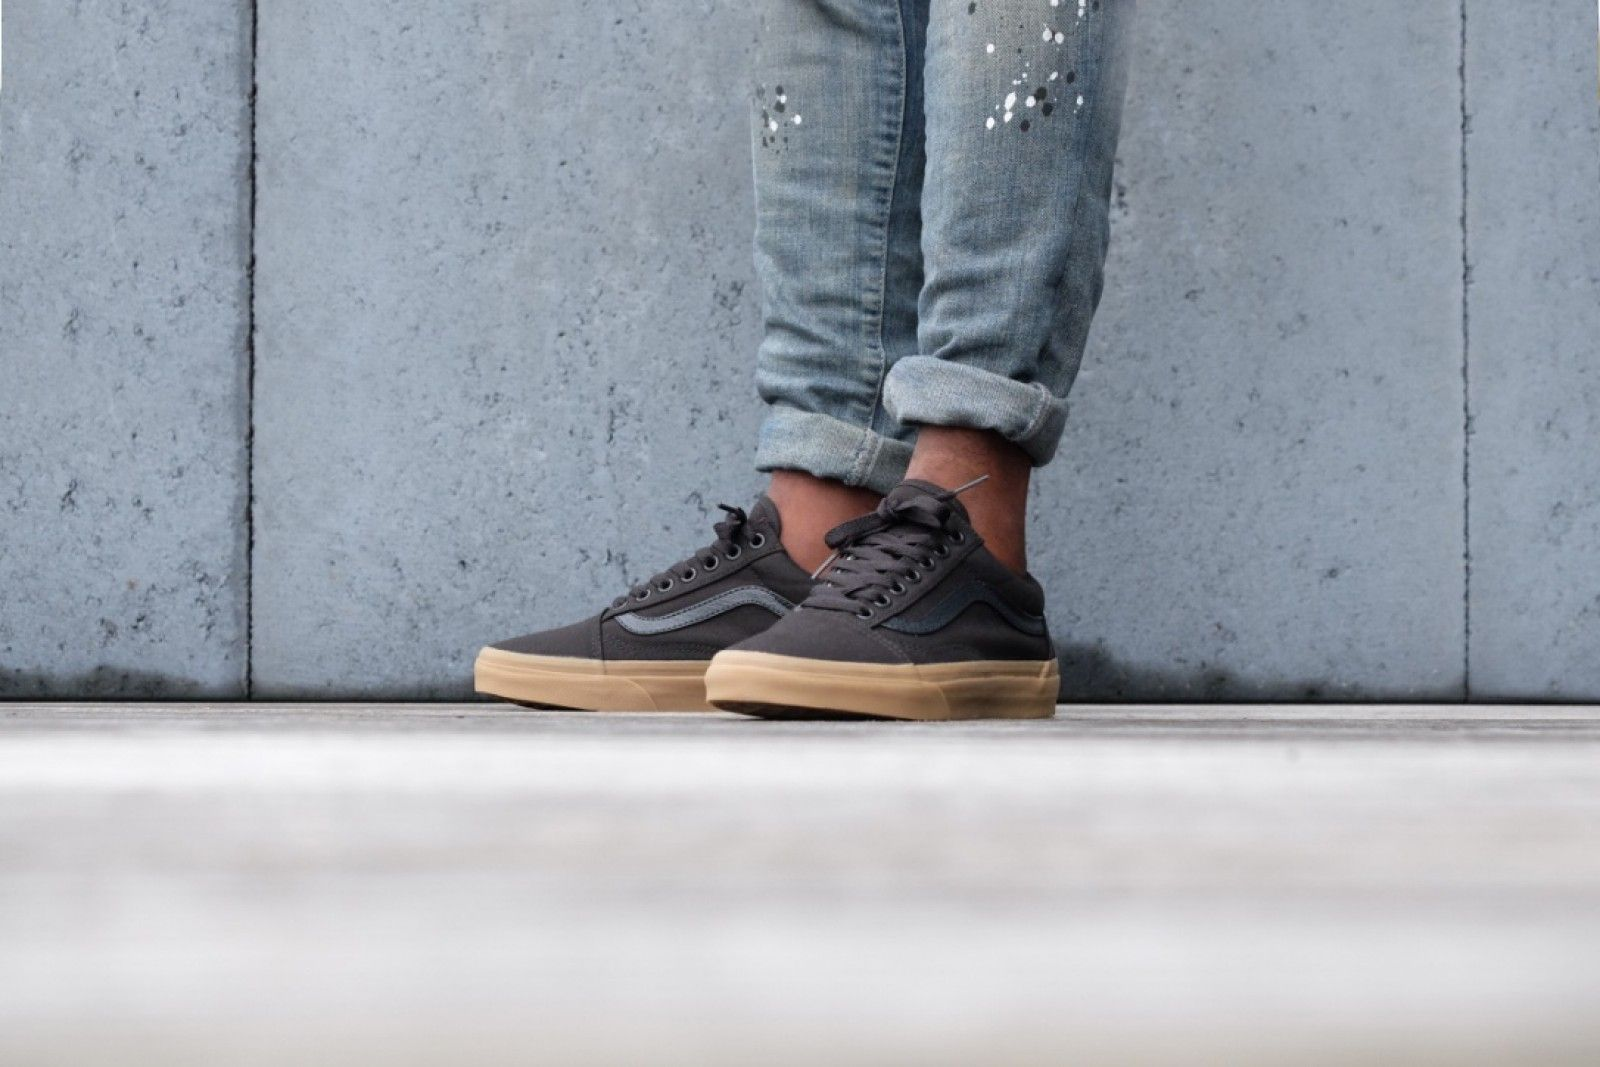 2a3e41bd8e724b Vans Old Skool Canvas - Black   Light Gum - VN0A31Z9L0D